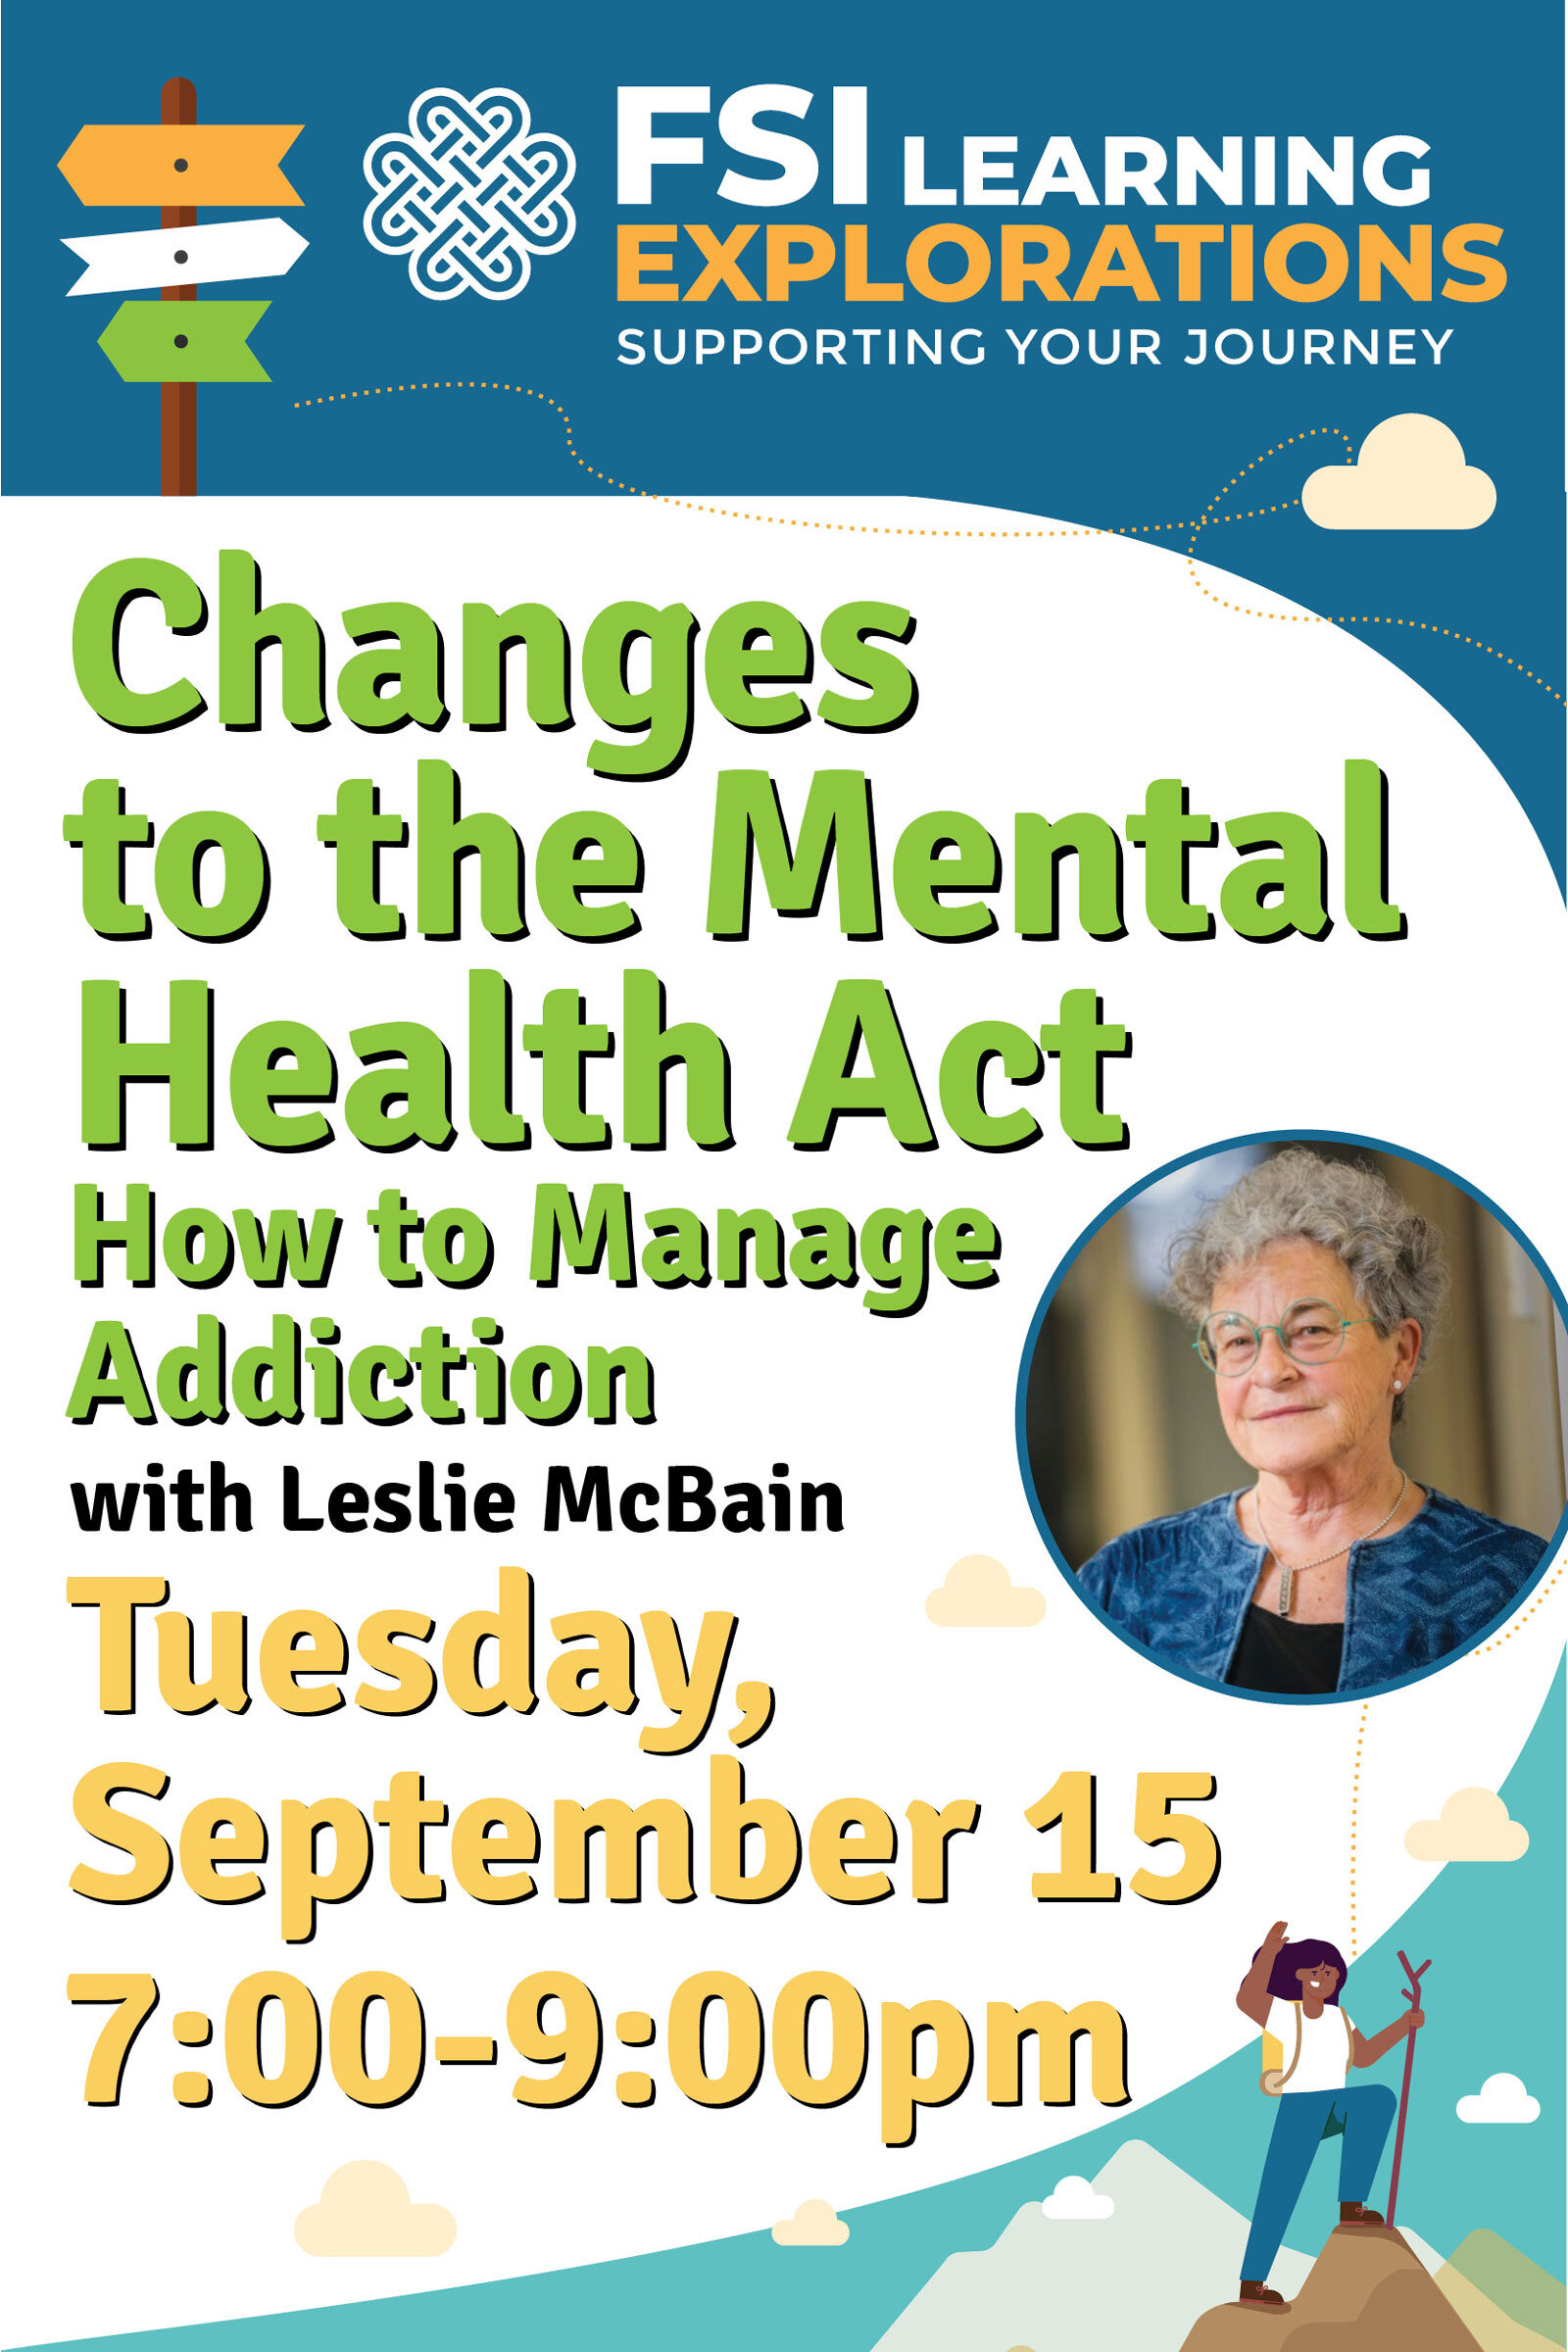 FSI Learning Explorations - Changes to the Mental Health Act – How to Manage Addiction